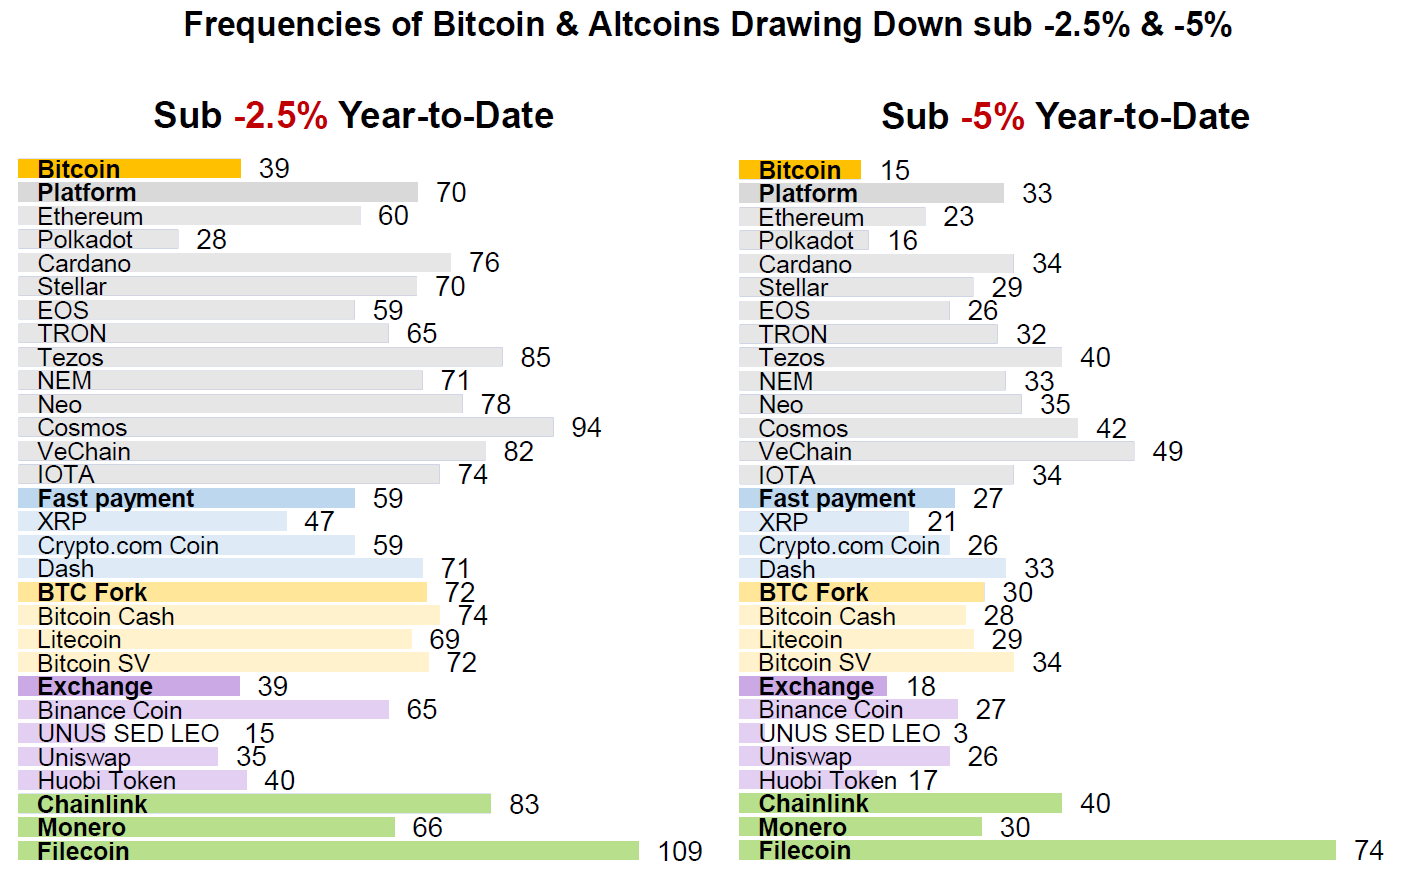 Frequencies of Bitcoin & Altcoins Drawing Down Sub -2.5% & -5%